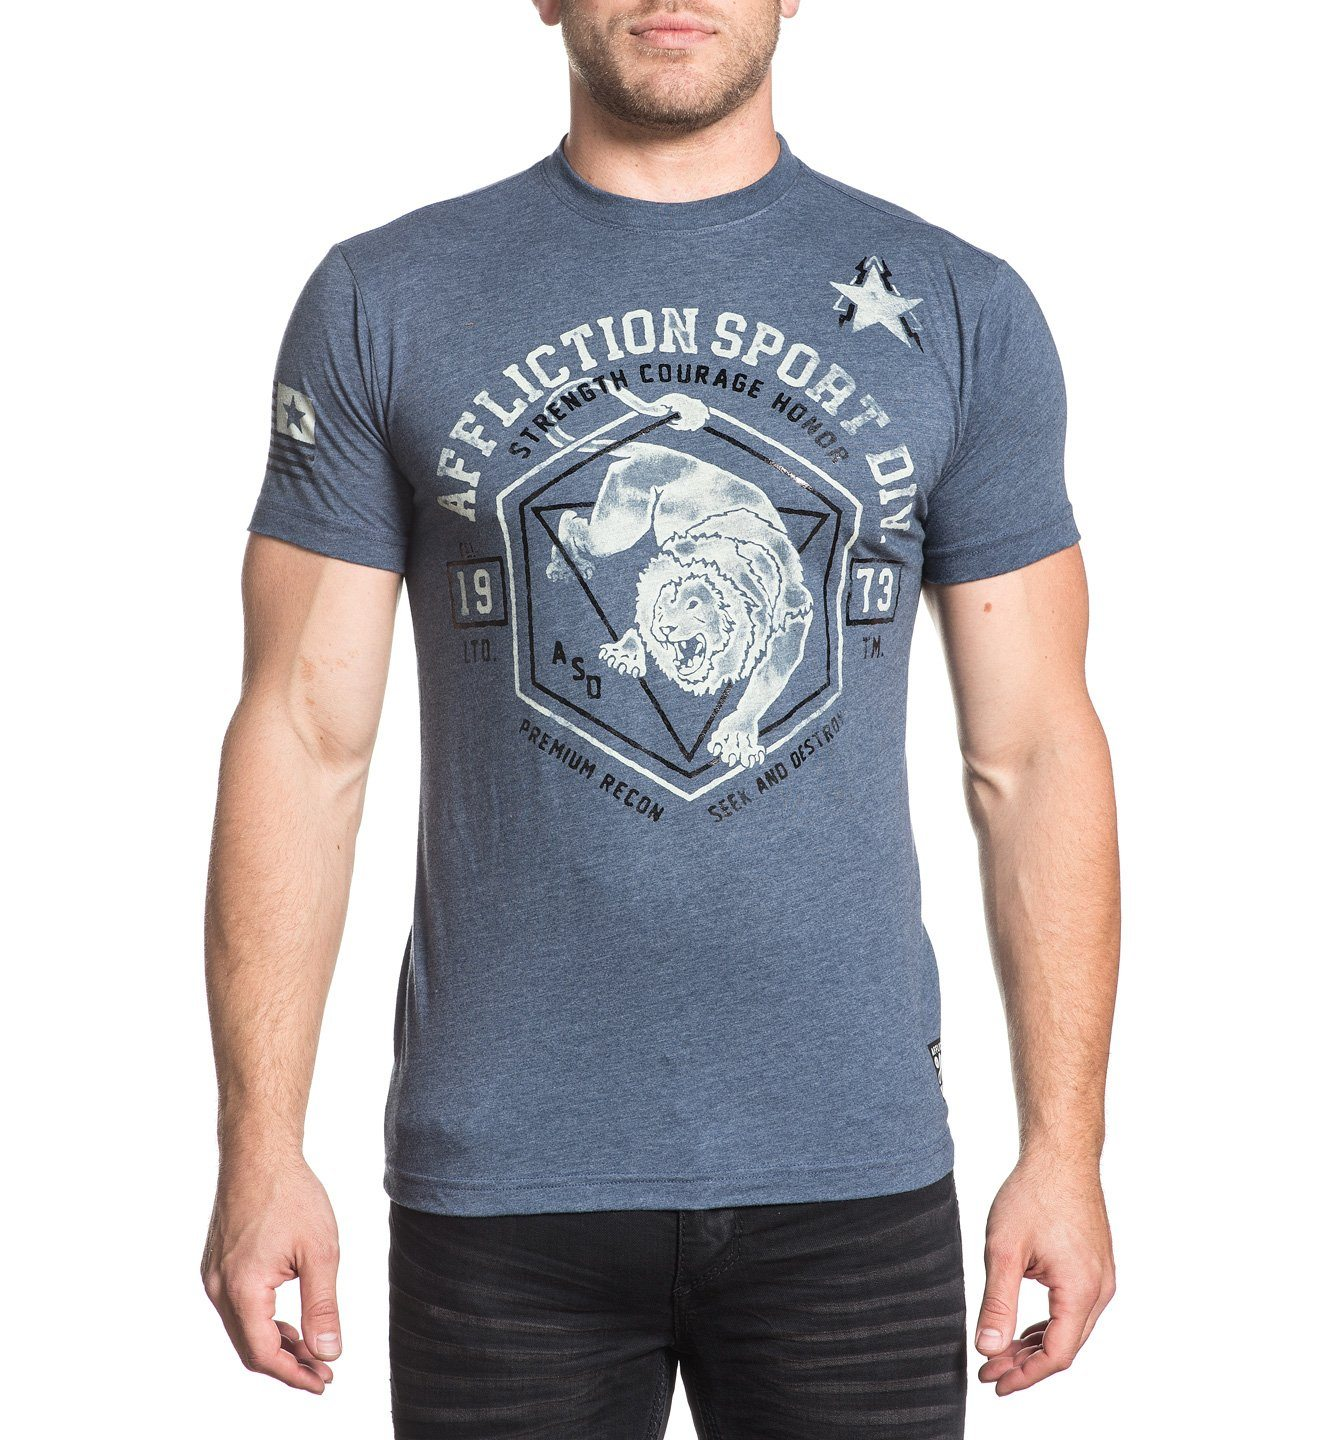 Animal Instinct - Mens Short Sleeve Tees - Affliction Clothing